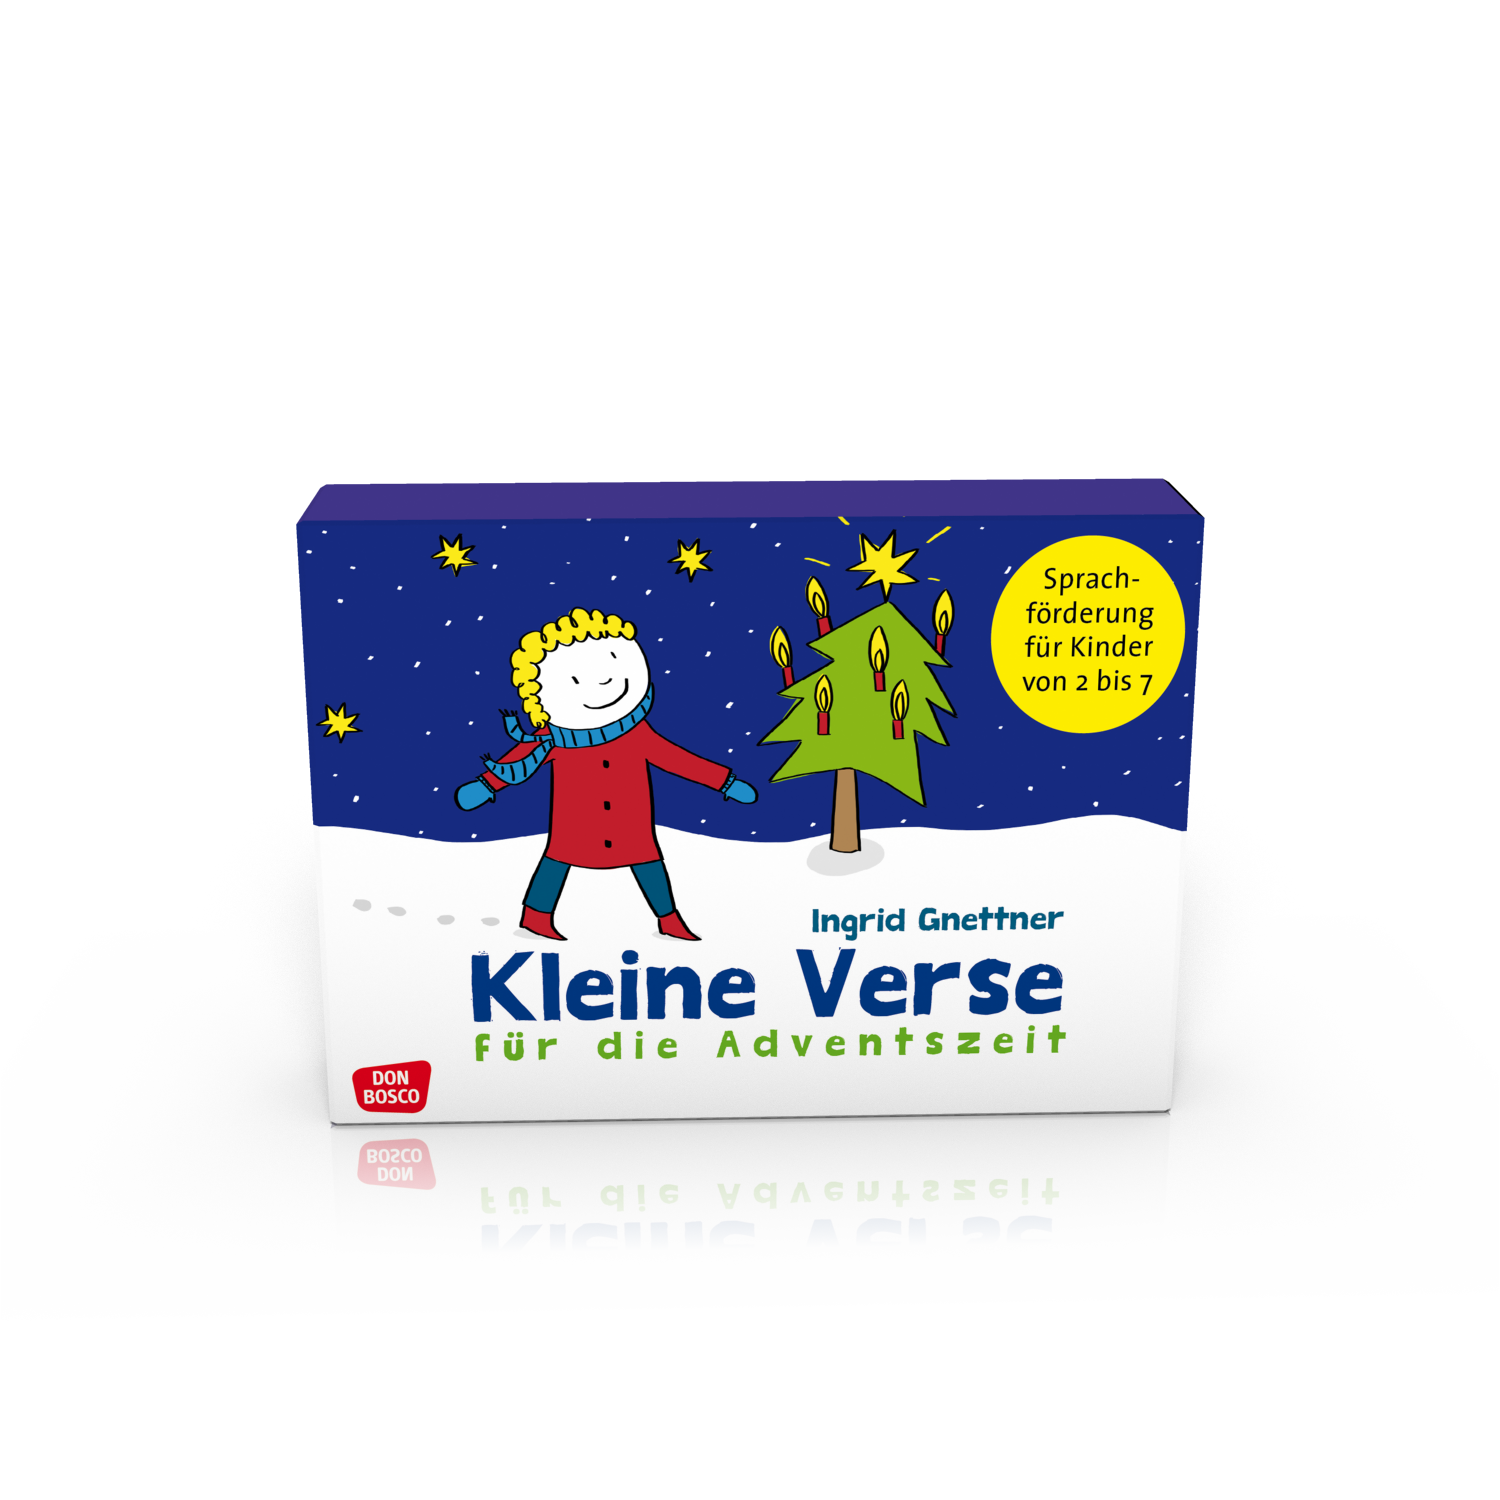 kleineVerse_advent2